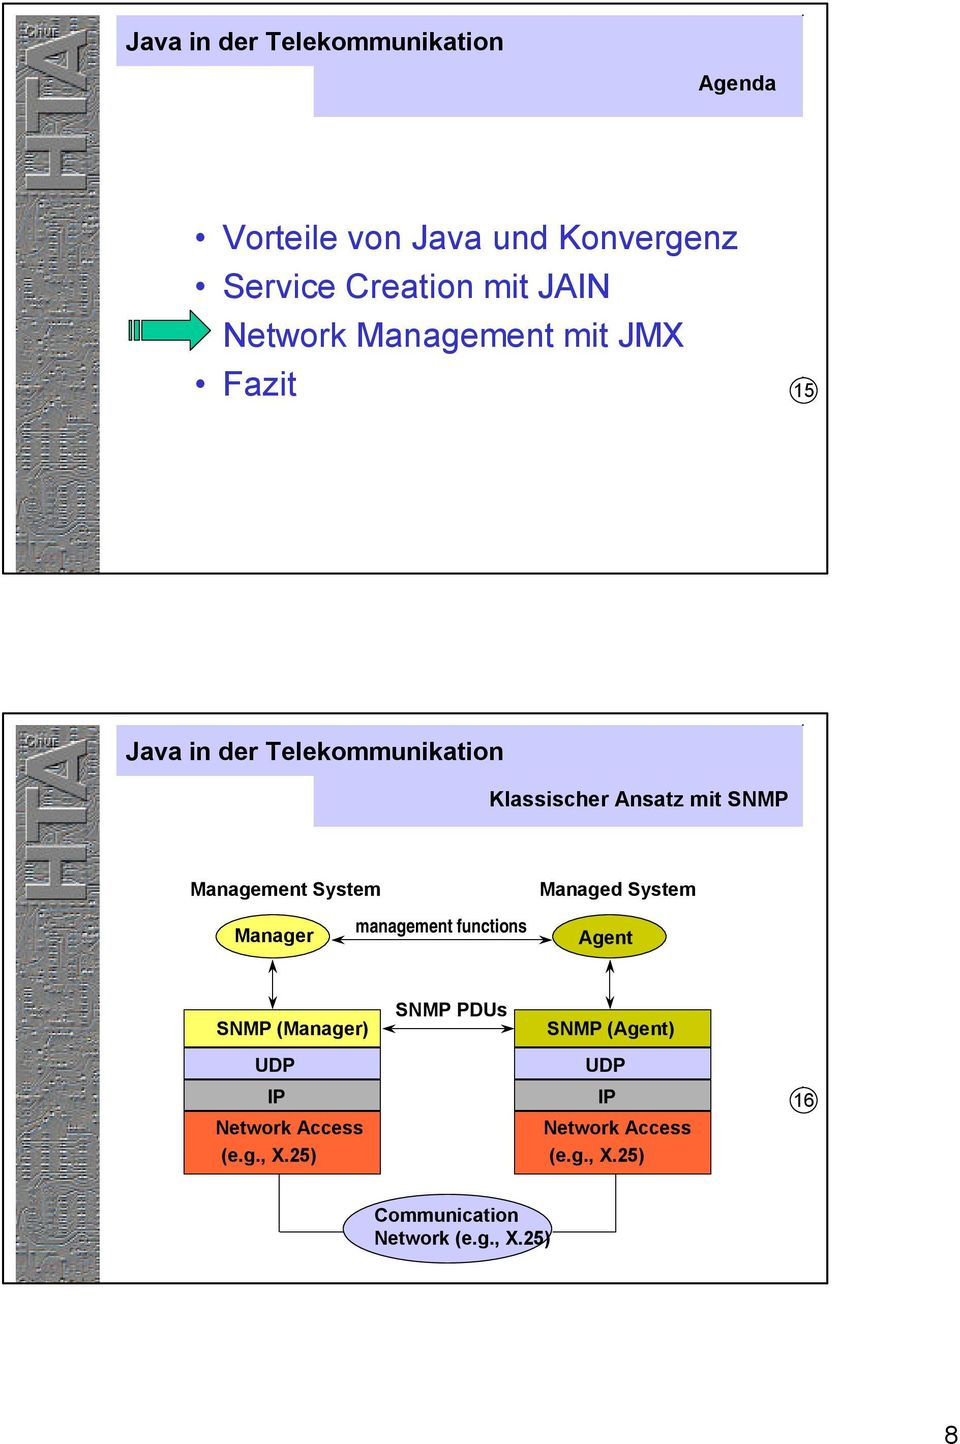 management functions Agent SNMP (Manager) SNMP PDUs SNMP (Agent) UDP IP Network Access